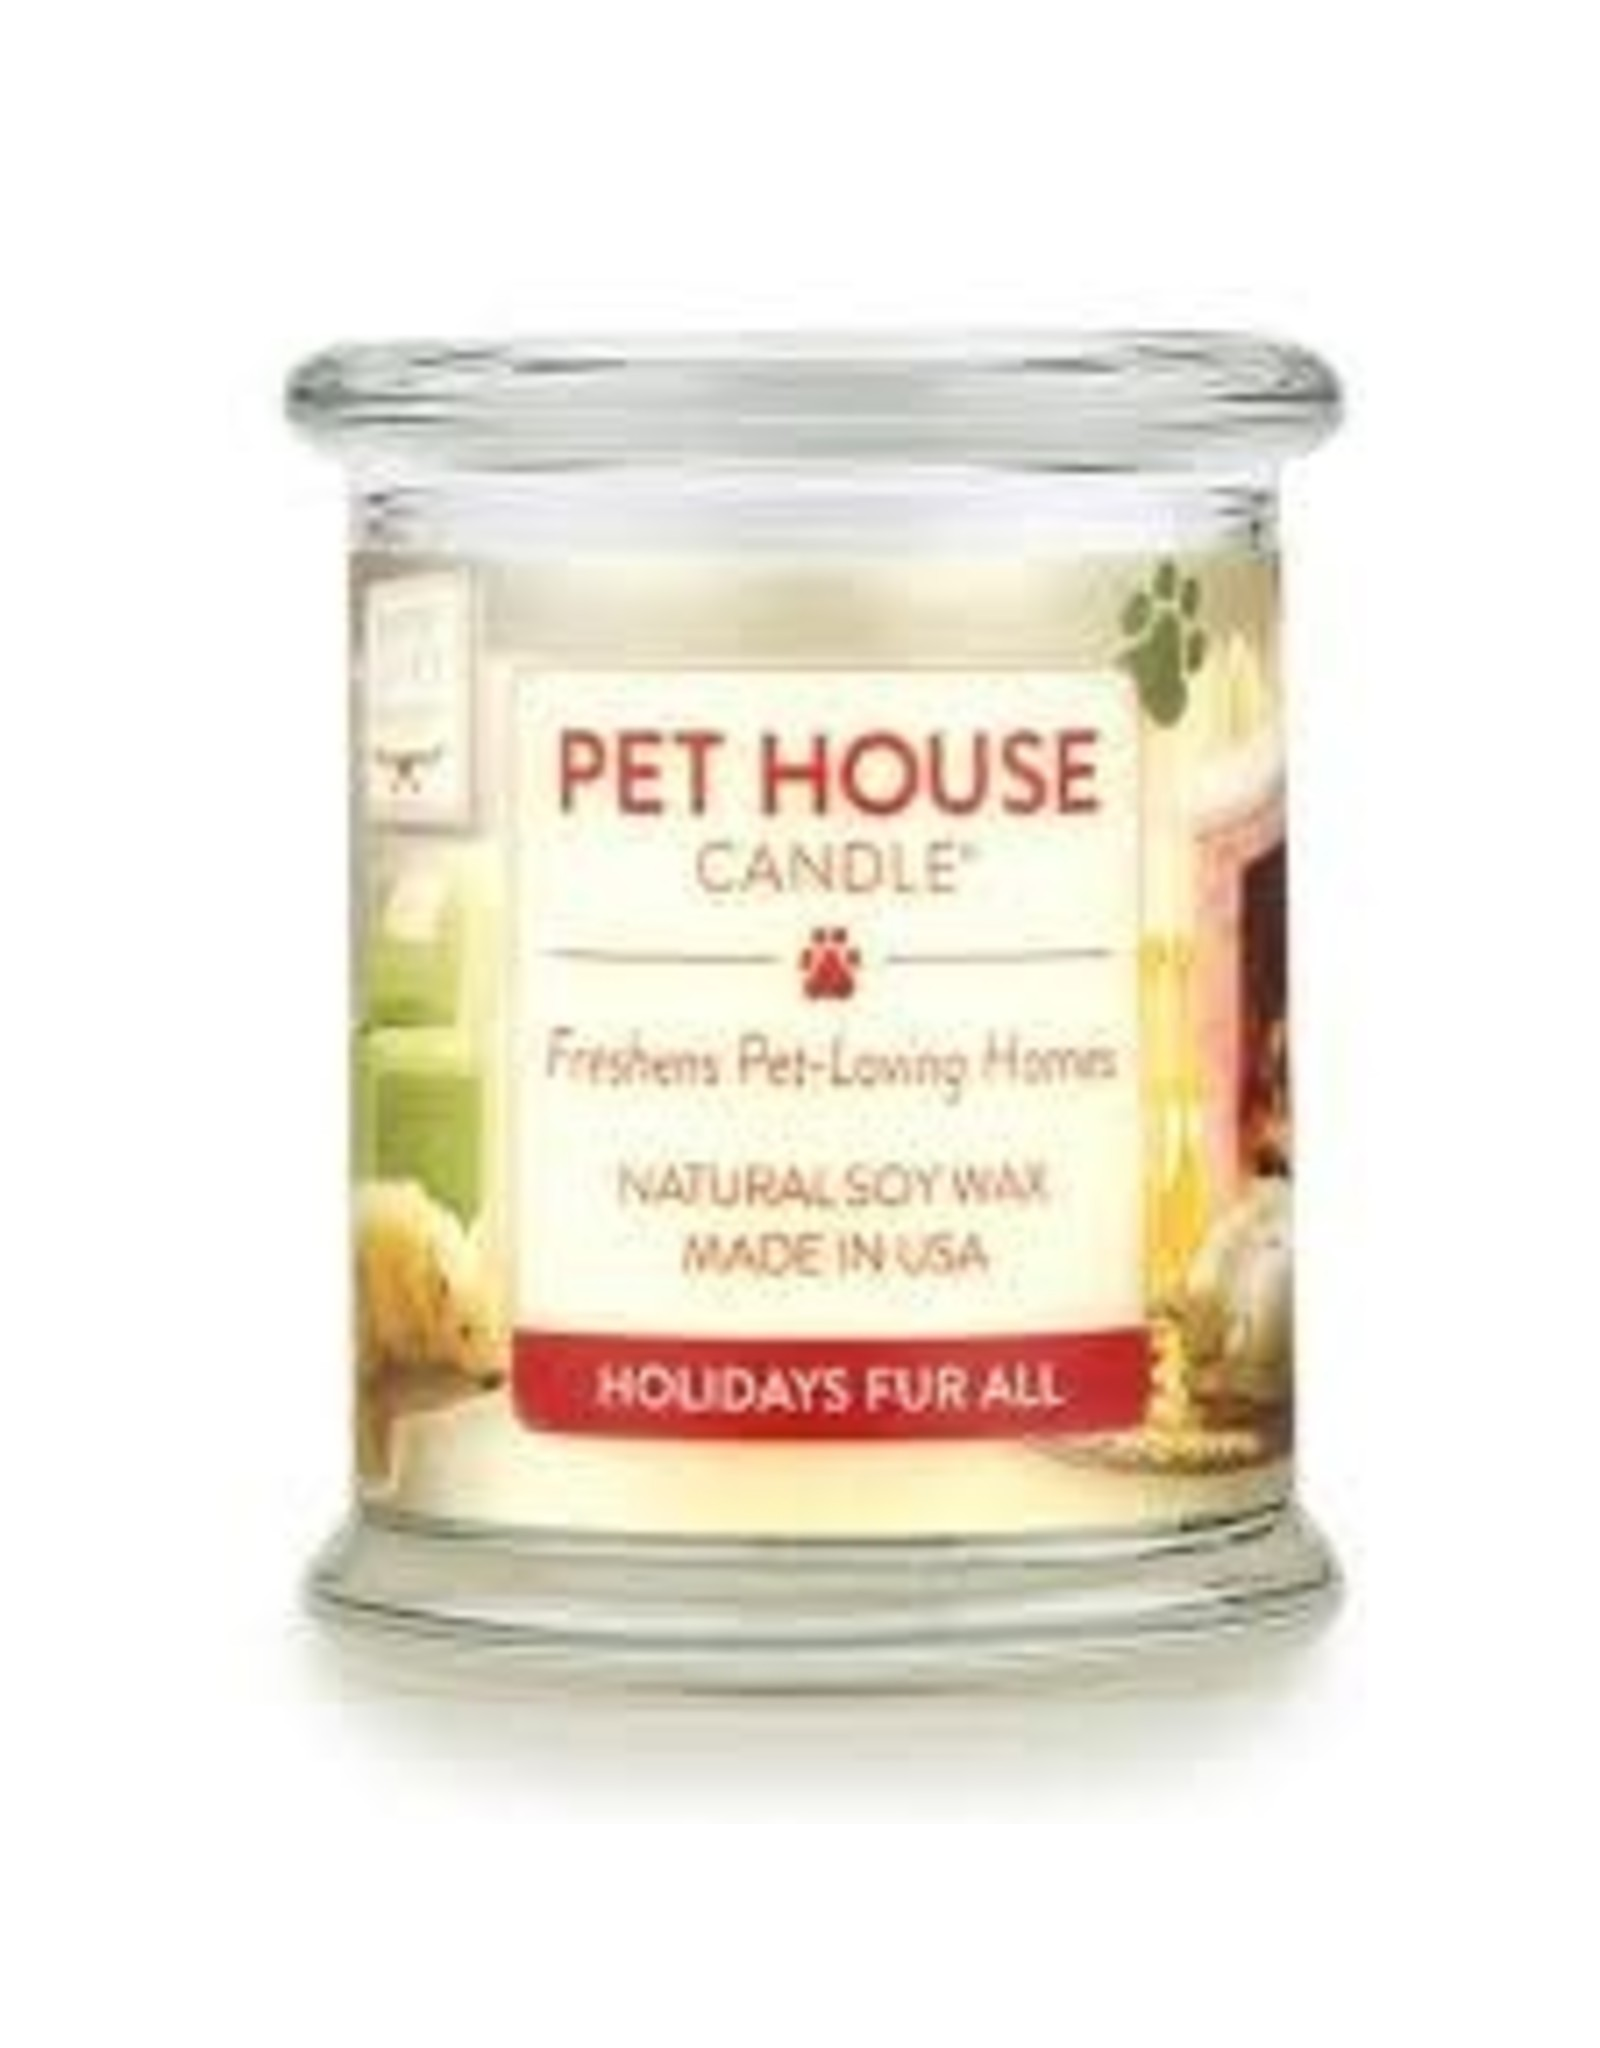 One Fur All Large Candles Holidays Fur All 8.5oz